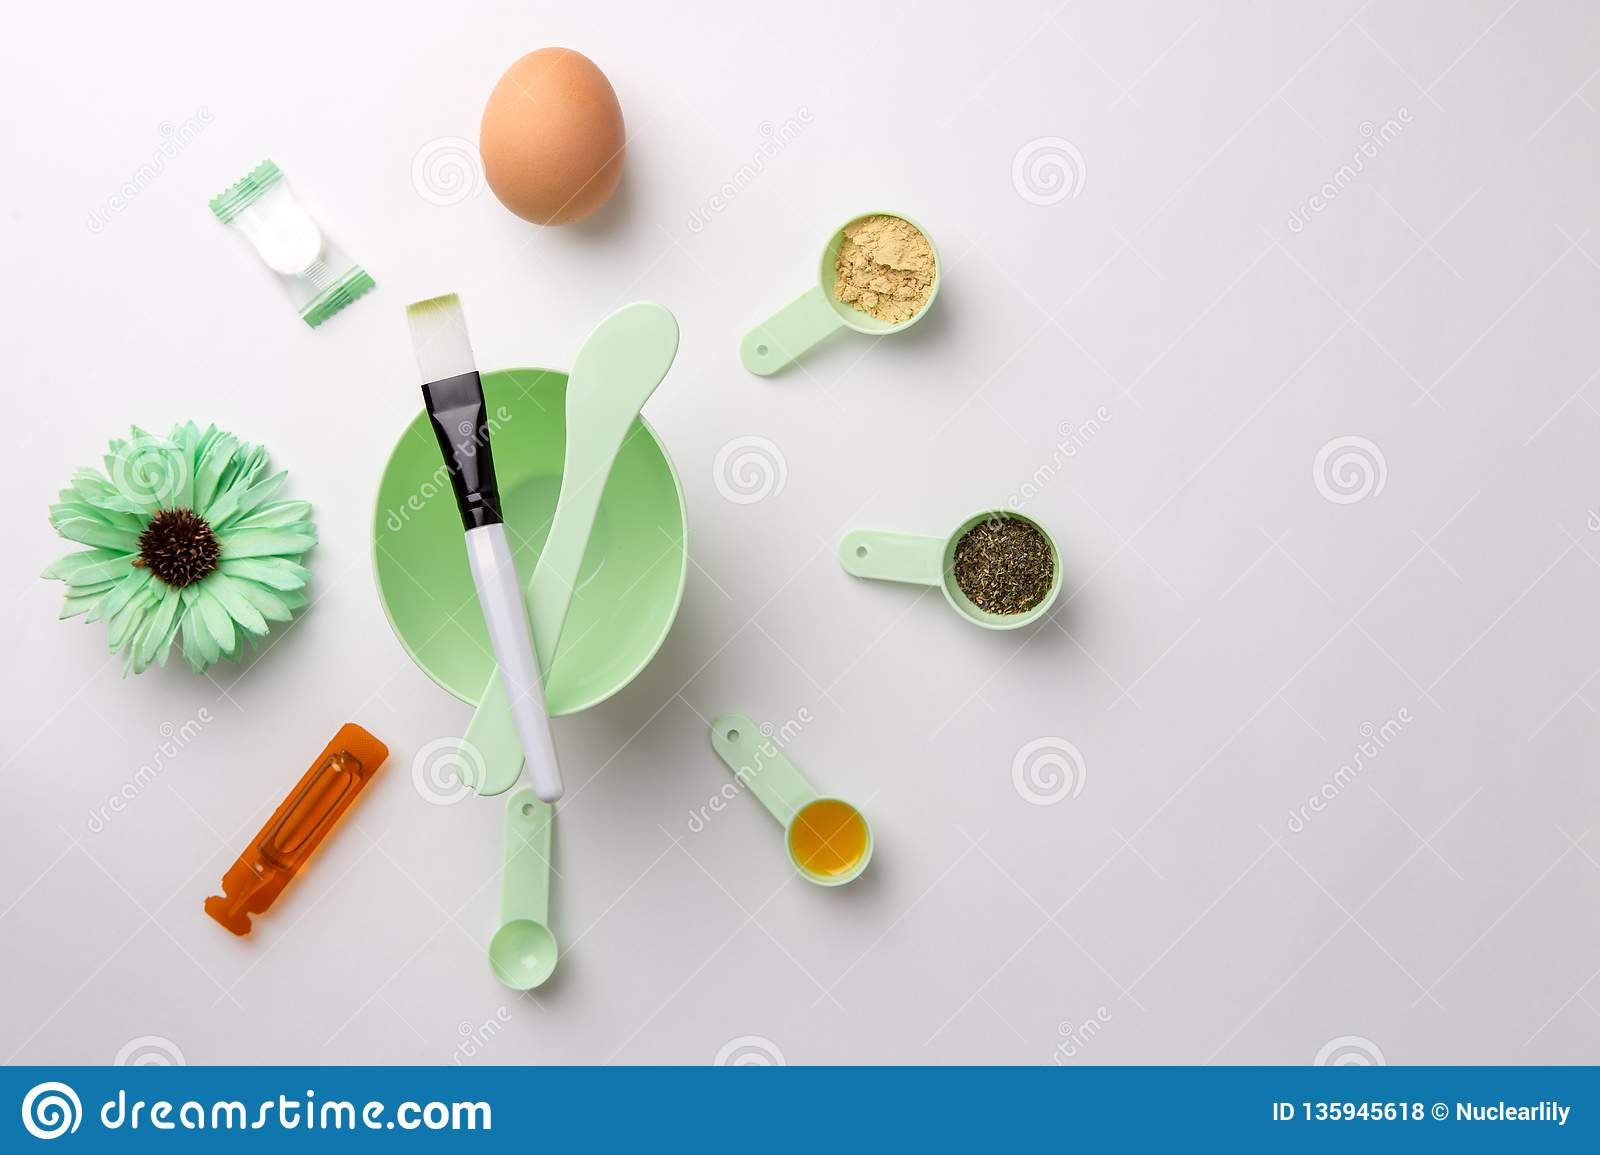 Ingredients For Homemade Face Mask Or Hair Castor Oil Essential Oils Mustard Dry Nettle Leaves Stock Photo Image Of Cosmetic Healthcare 135945618